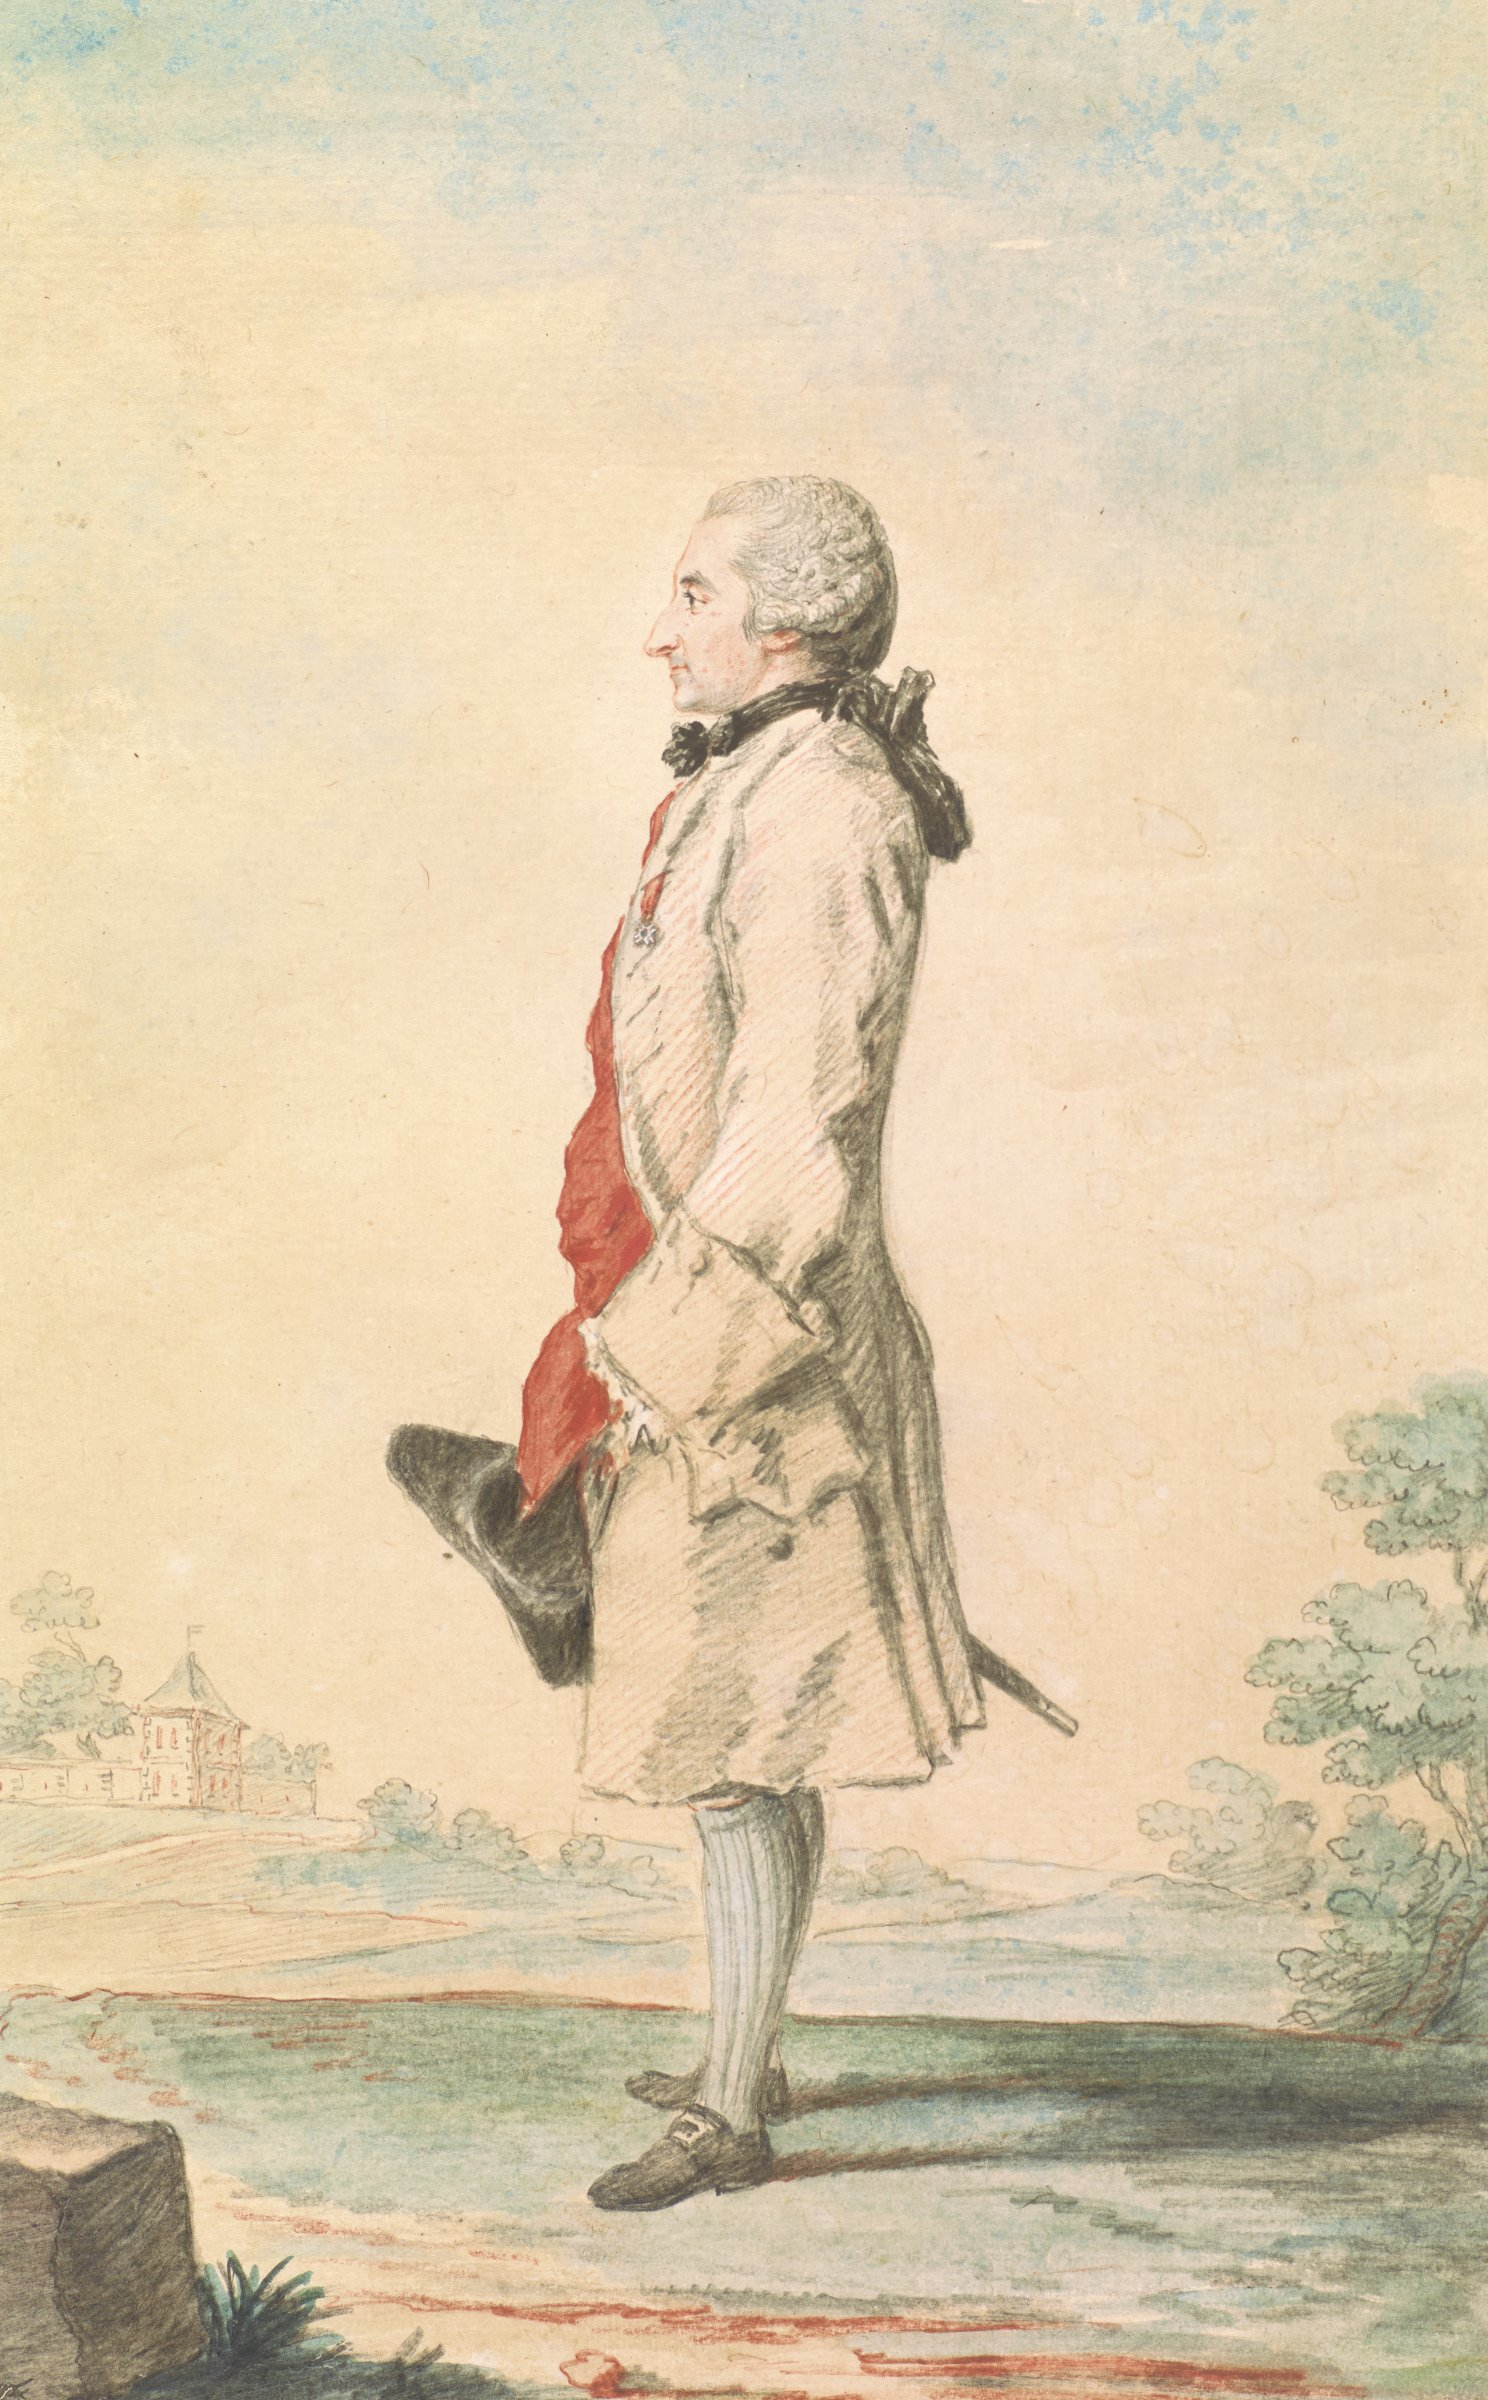 Standing man facing left, carrying a tricorn hat and sword(?) on his right side. He wears a knee-length coat, buckled shoes and blue socks to his knees. Hanging from a red ribbon on his left breast is a star-shaped medal. He stands in a landscape with a building in the far left distance.